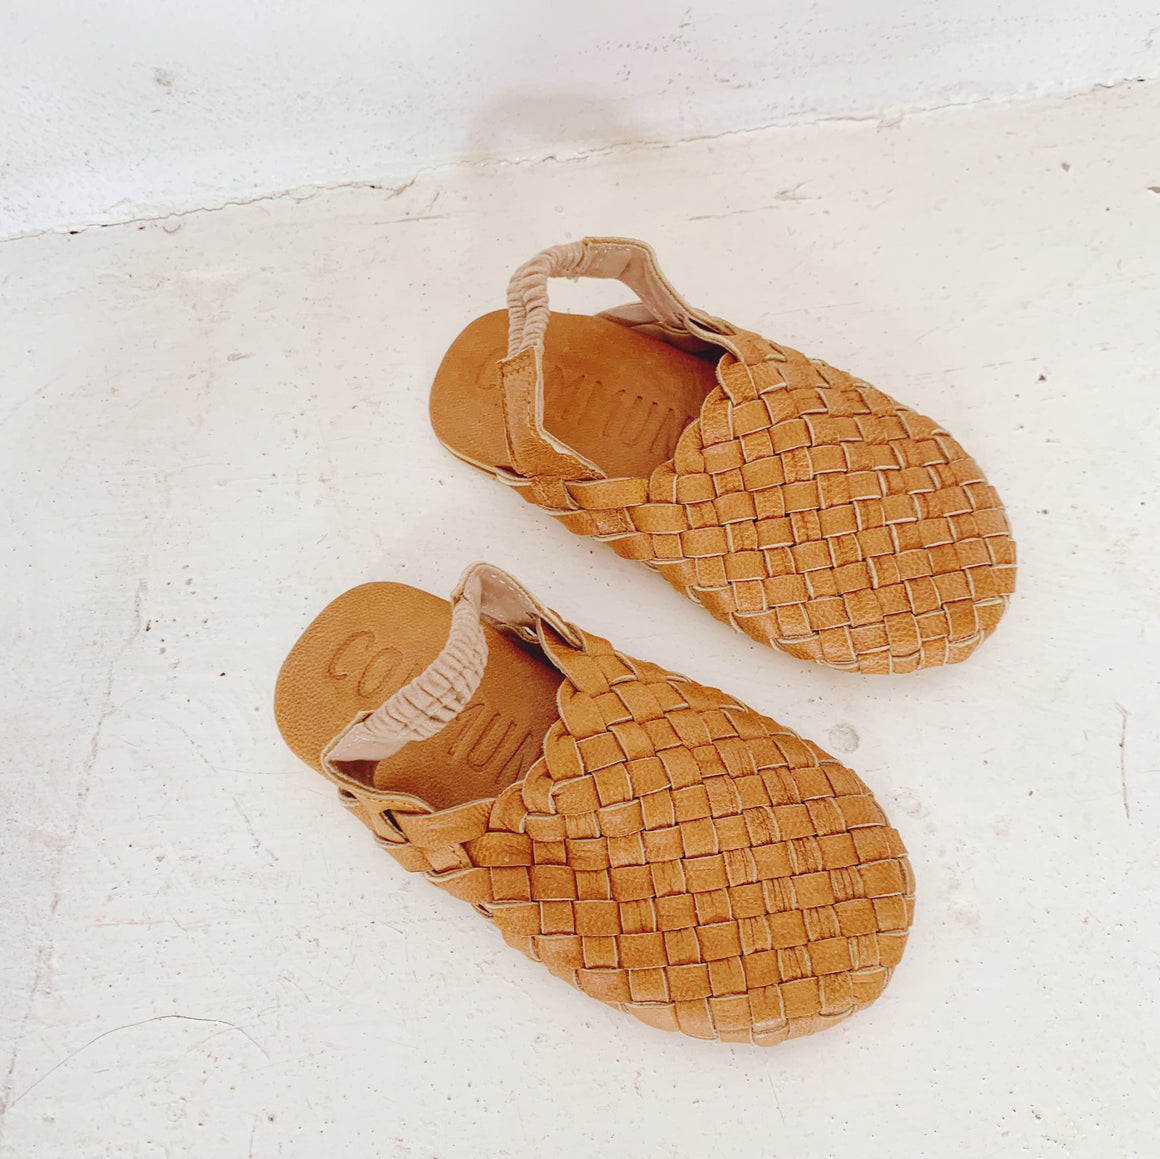 Commune Children's Woven Sandals